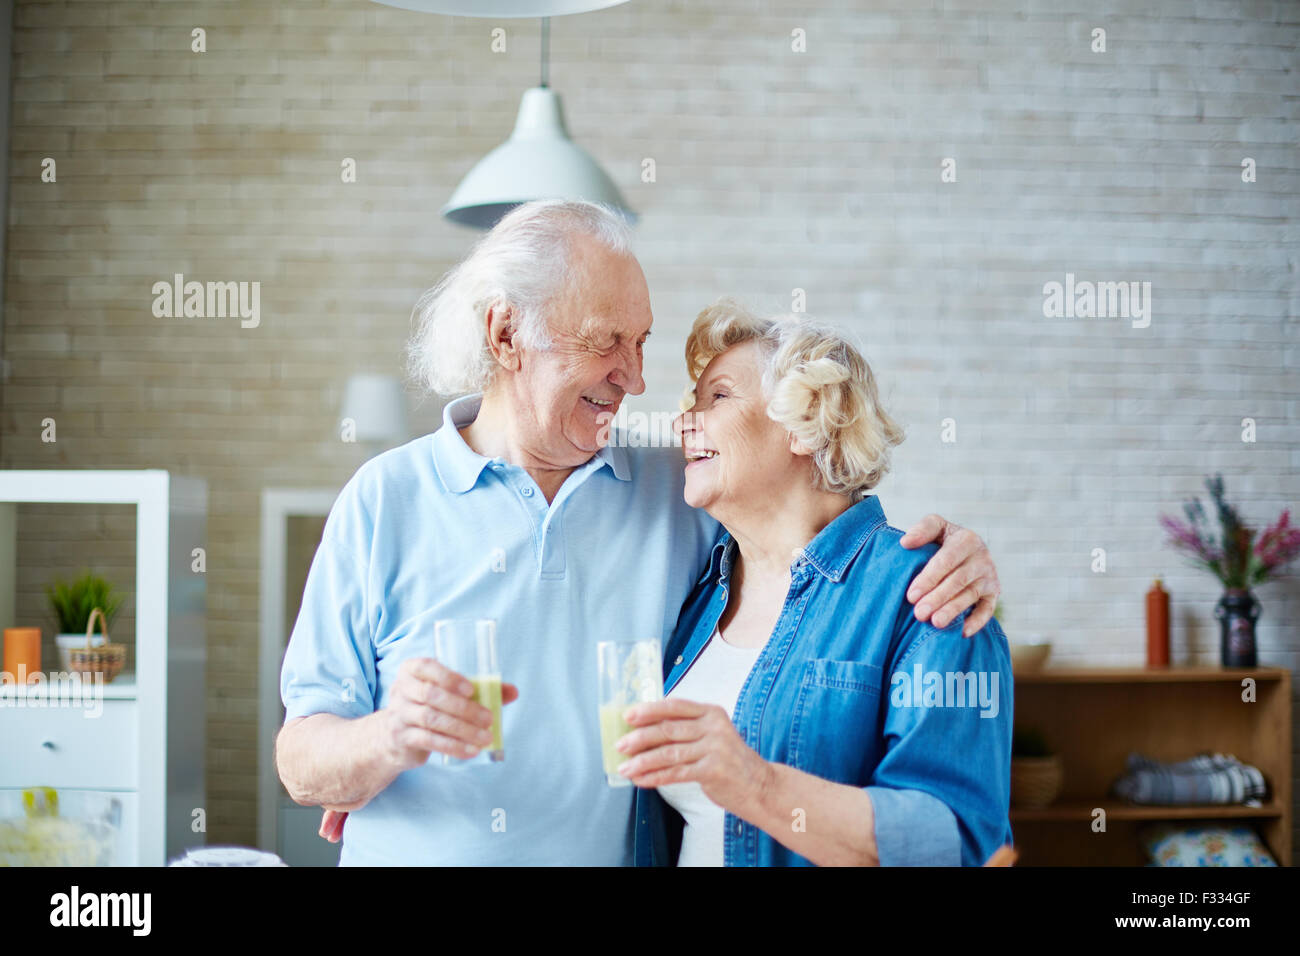 Senior husband and wife holding glasses with healthy homemade fruit drink and looking at one another - Stock Image